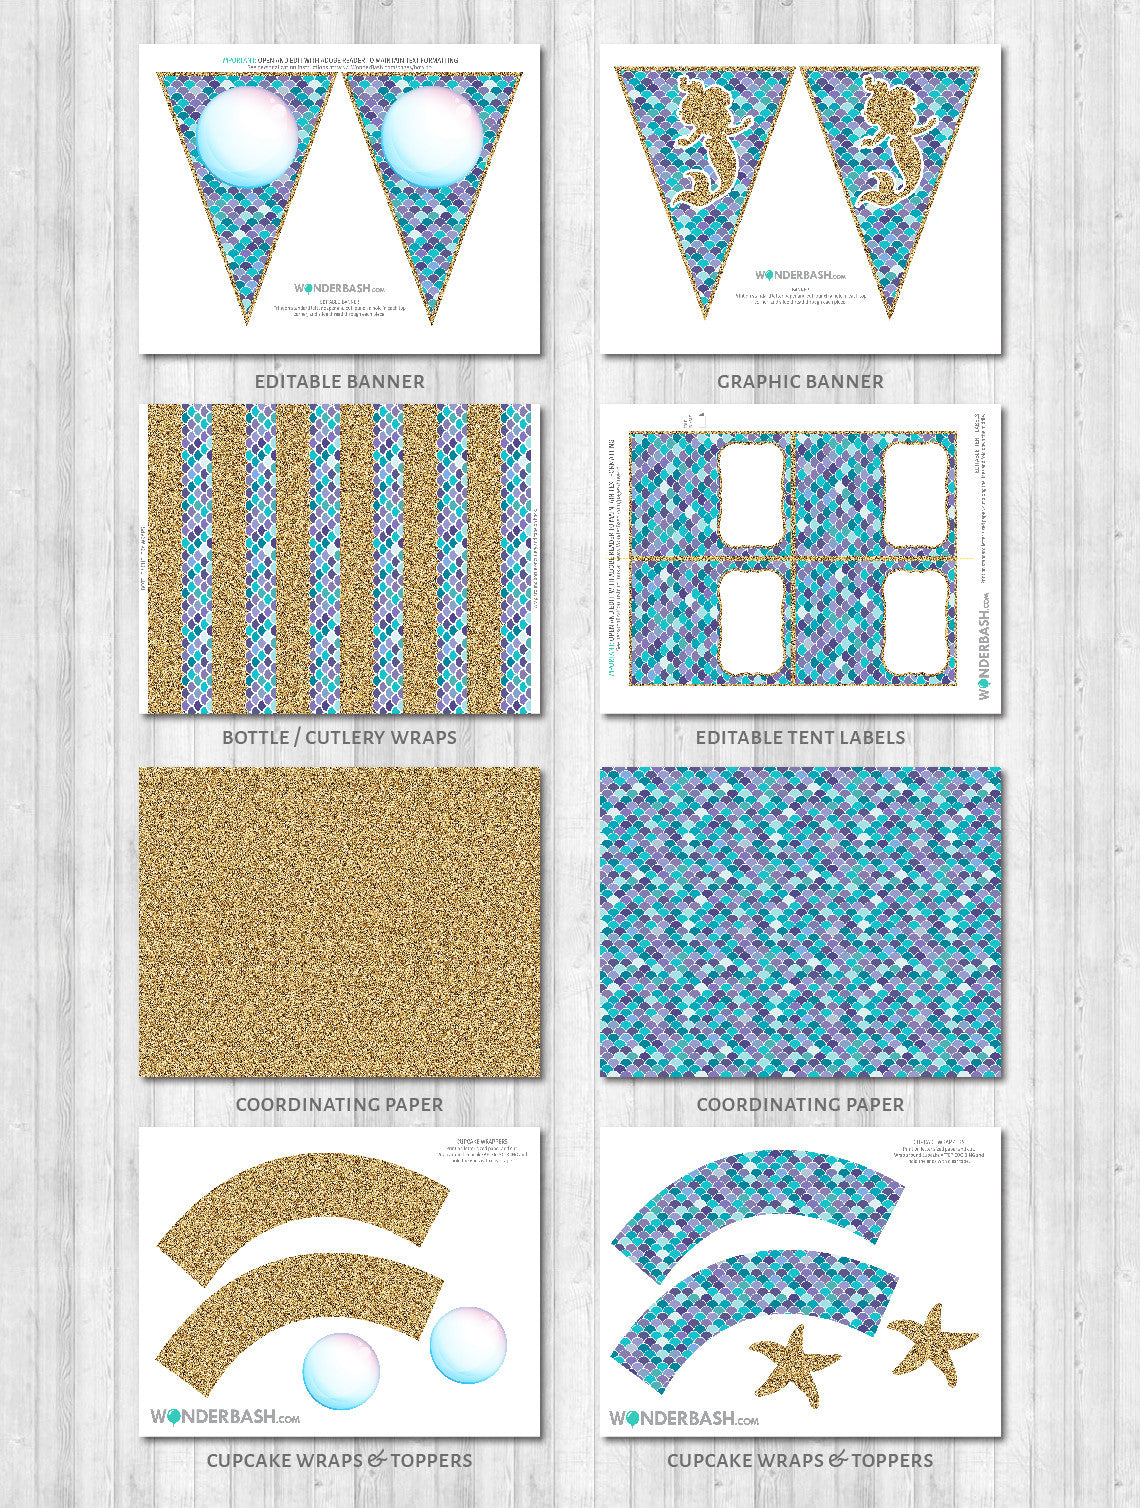 Mermaid Party Printable Decor Pack: Banner, toppers, cupcake wraps, labels